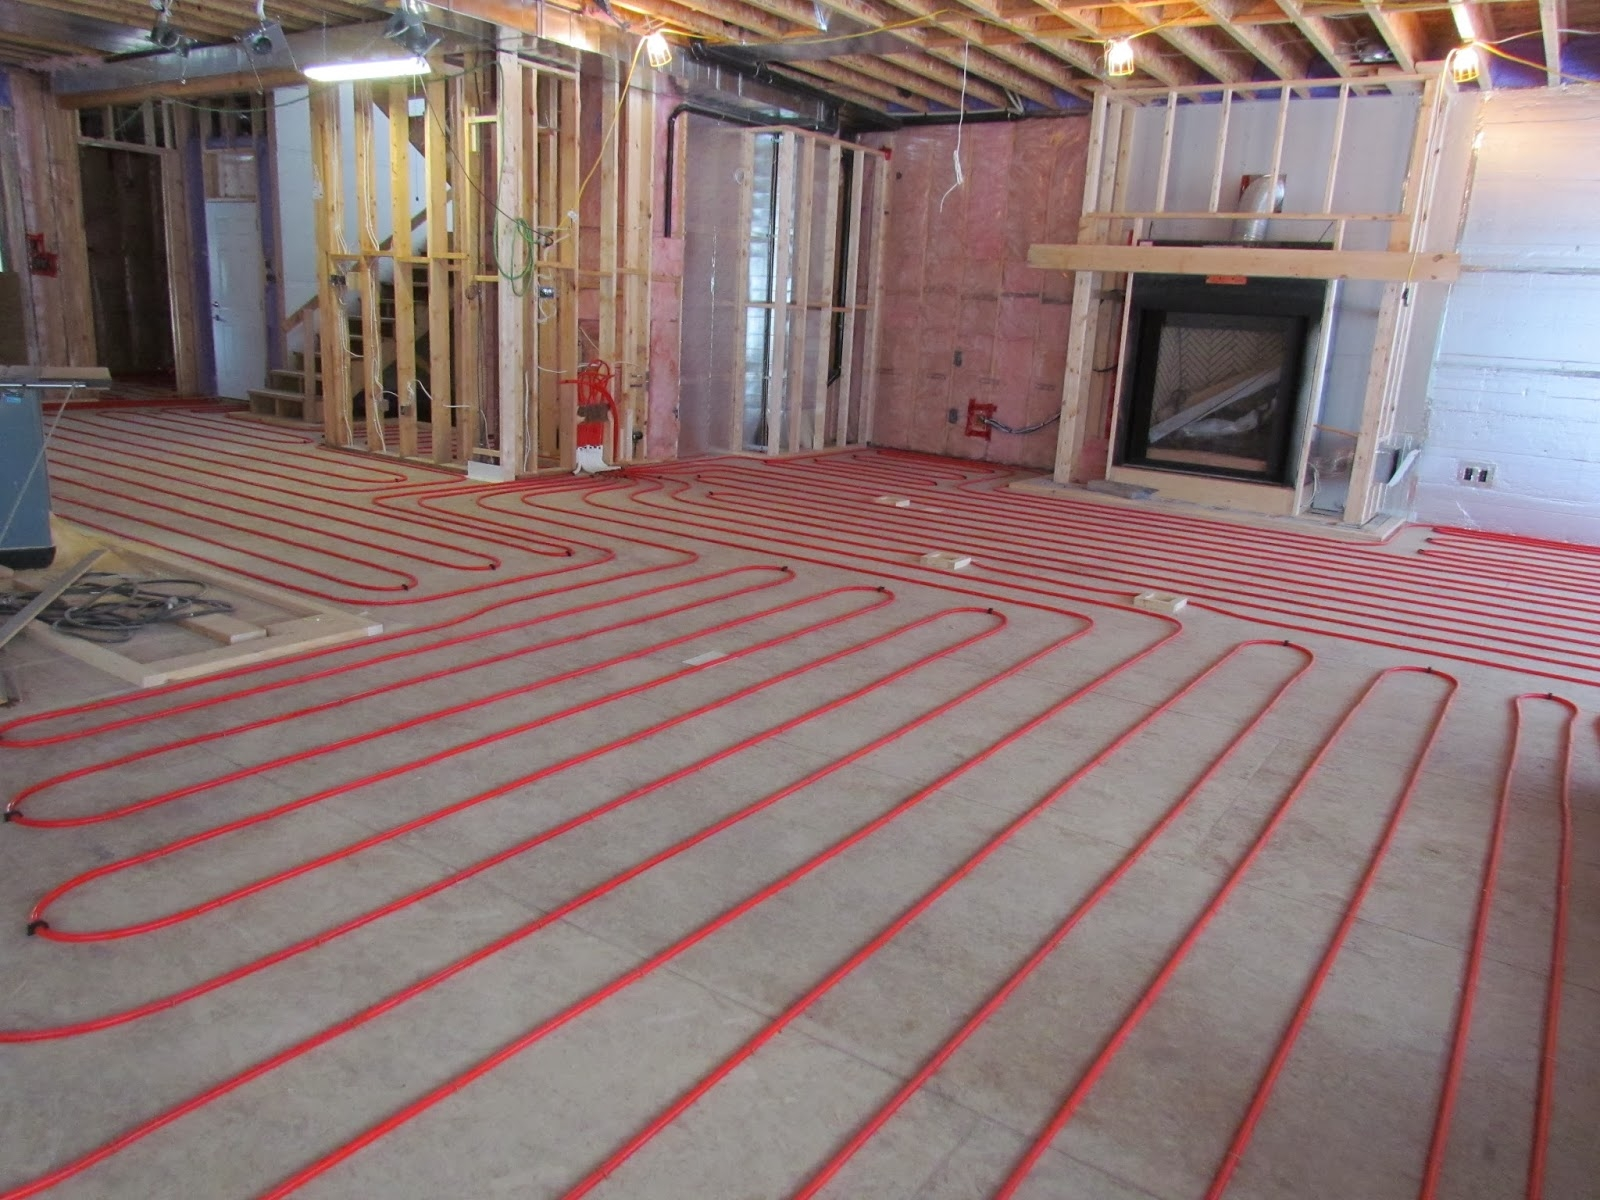 Radiant Floor Heating Systems For Basements